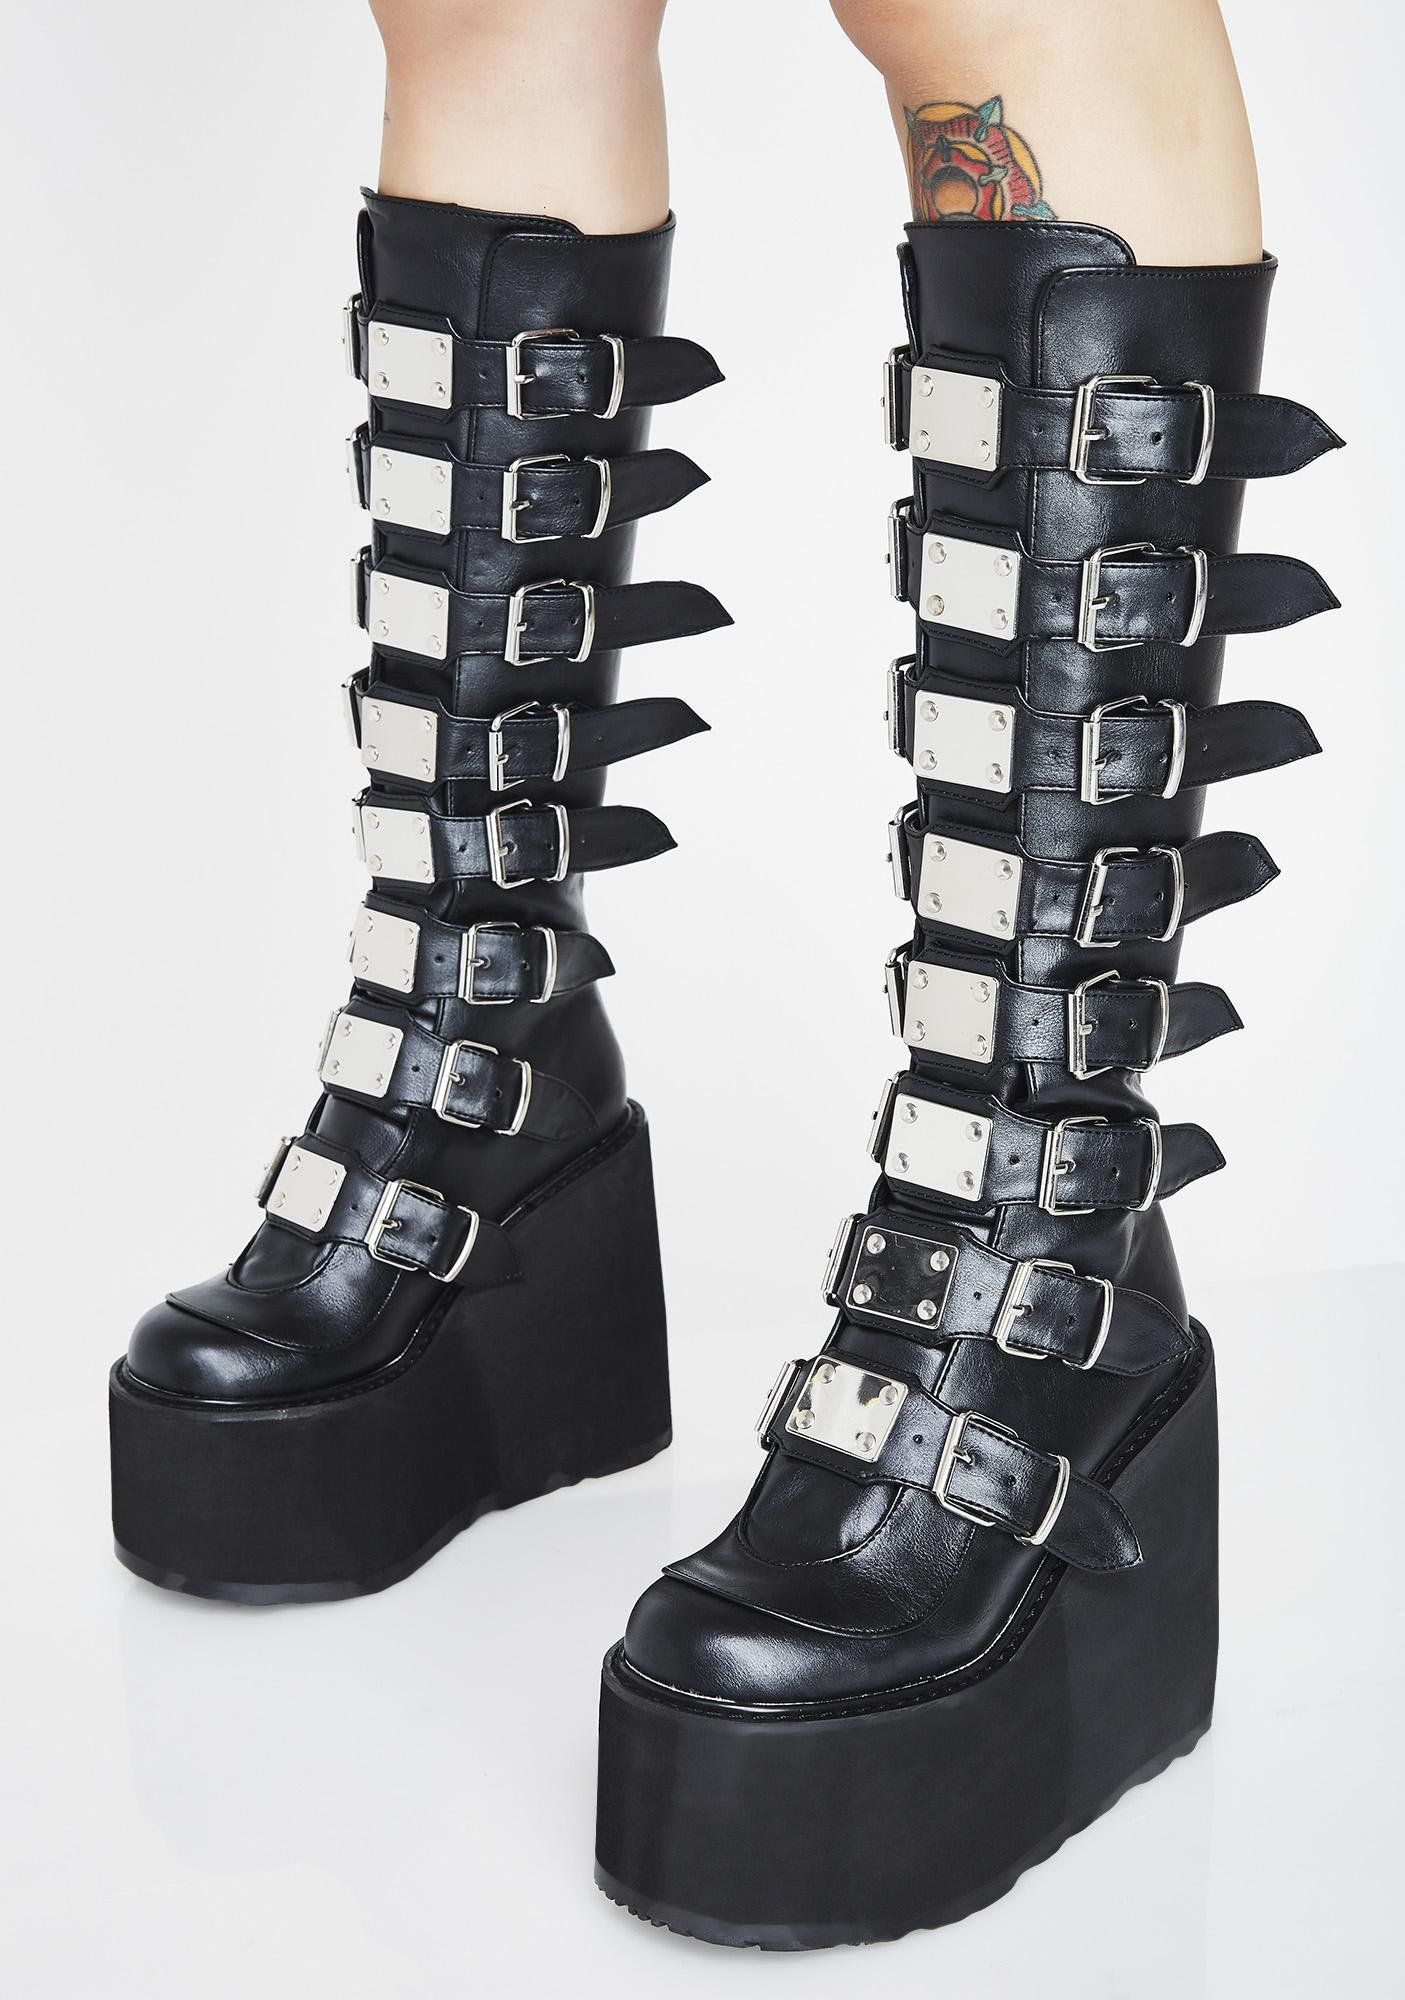 Trinity Boots | Goth boots, Goth shoes